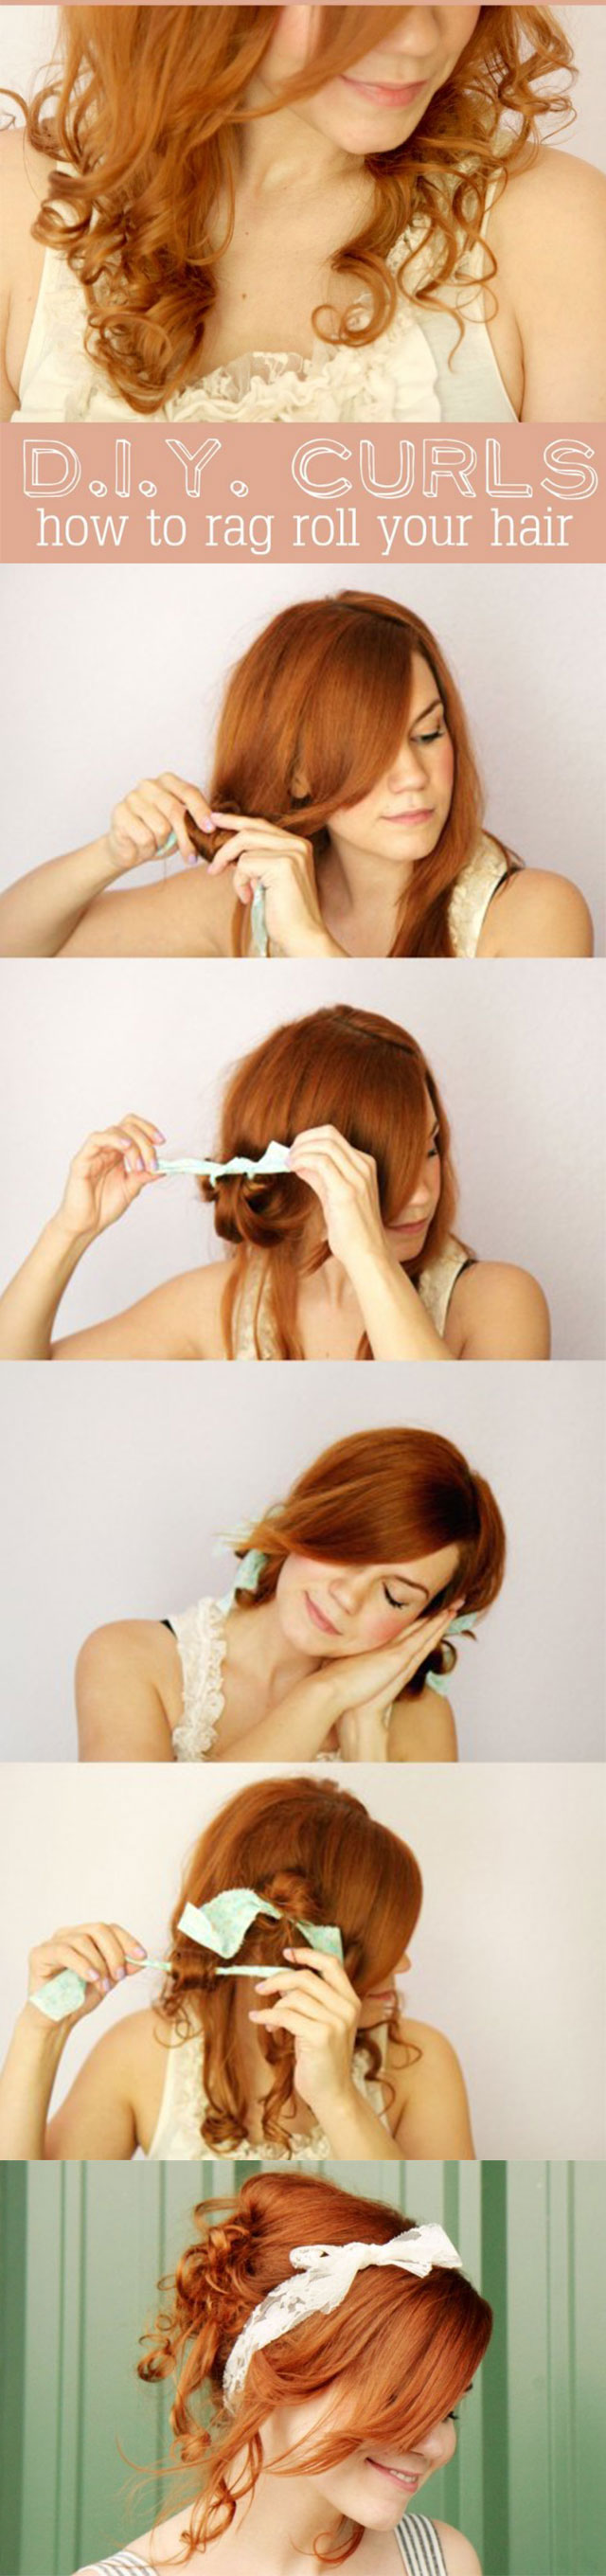 DIY-CURLS-HOW-TO-RAG-ROLL-YOUR-HAIR